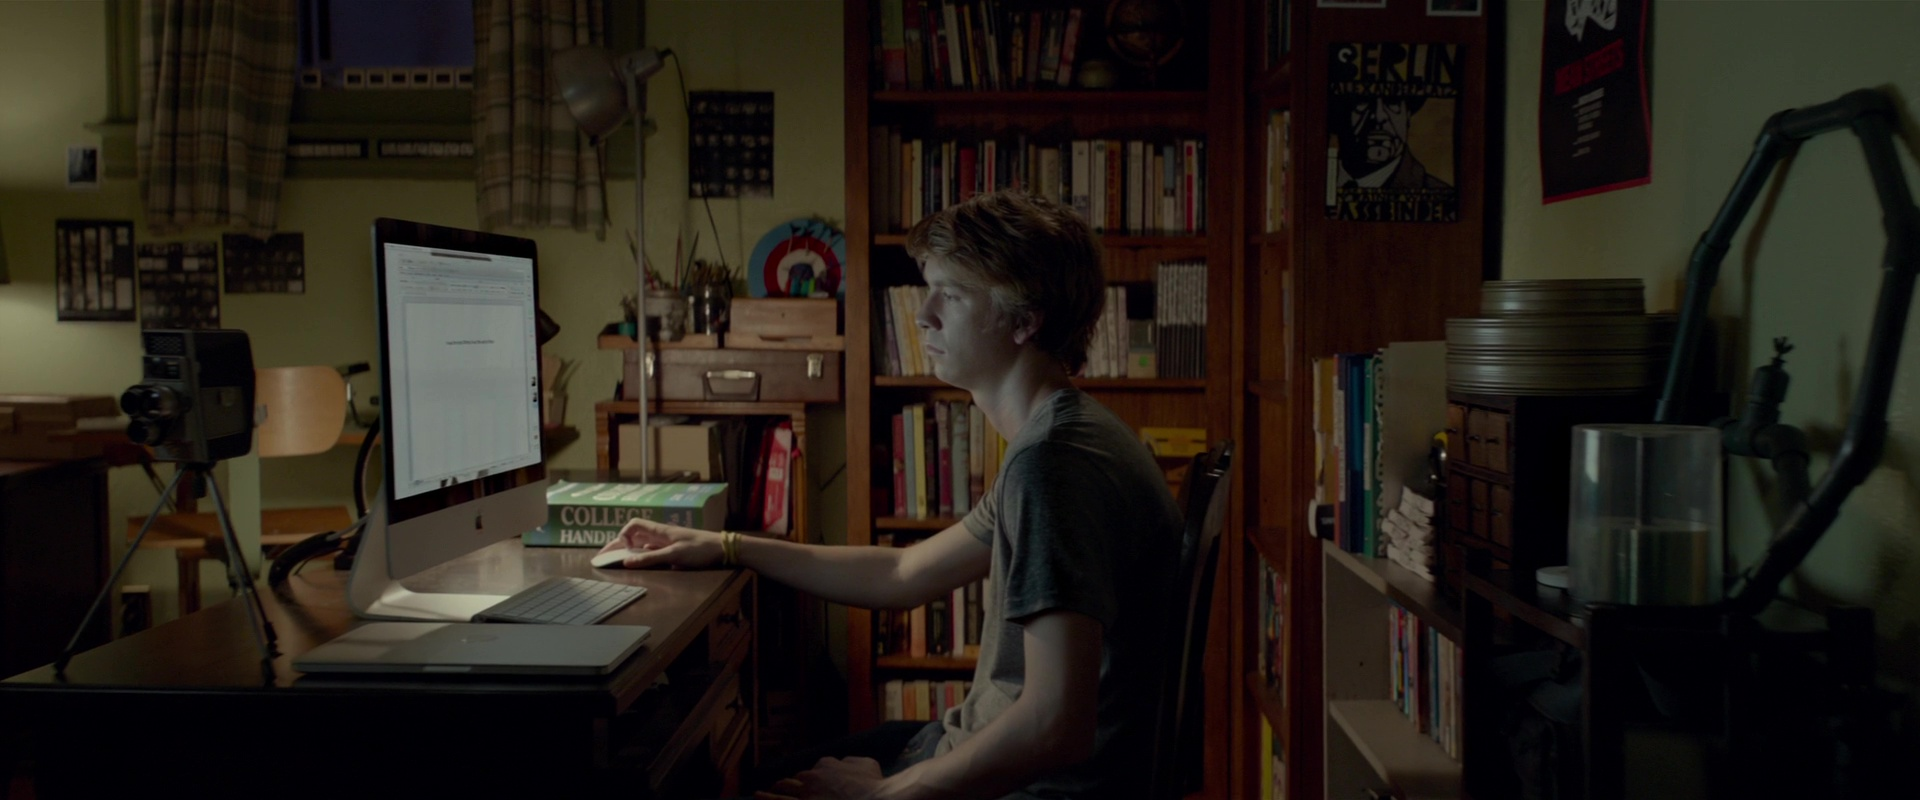 Me and Earld and the Dying Girl film still 3